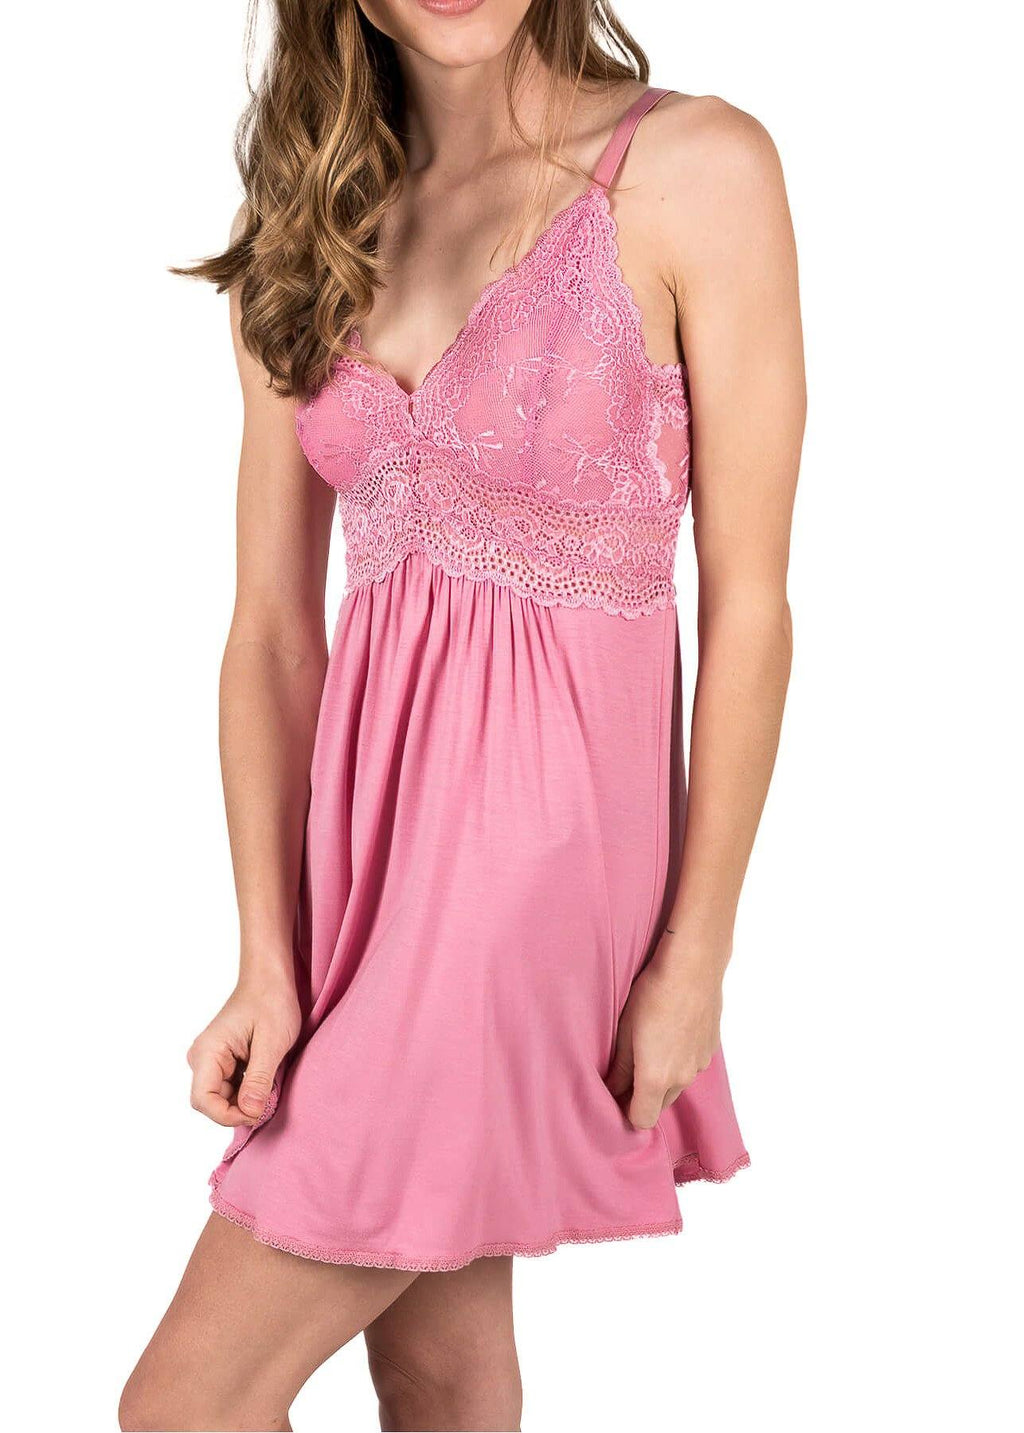 Bliss Chemise - Sea Pink Mystique Intimates